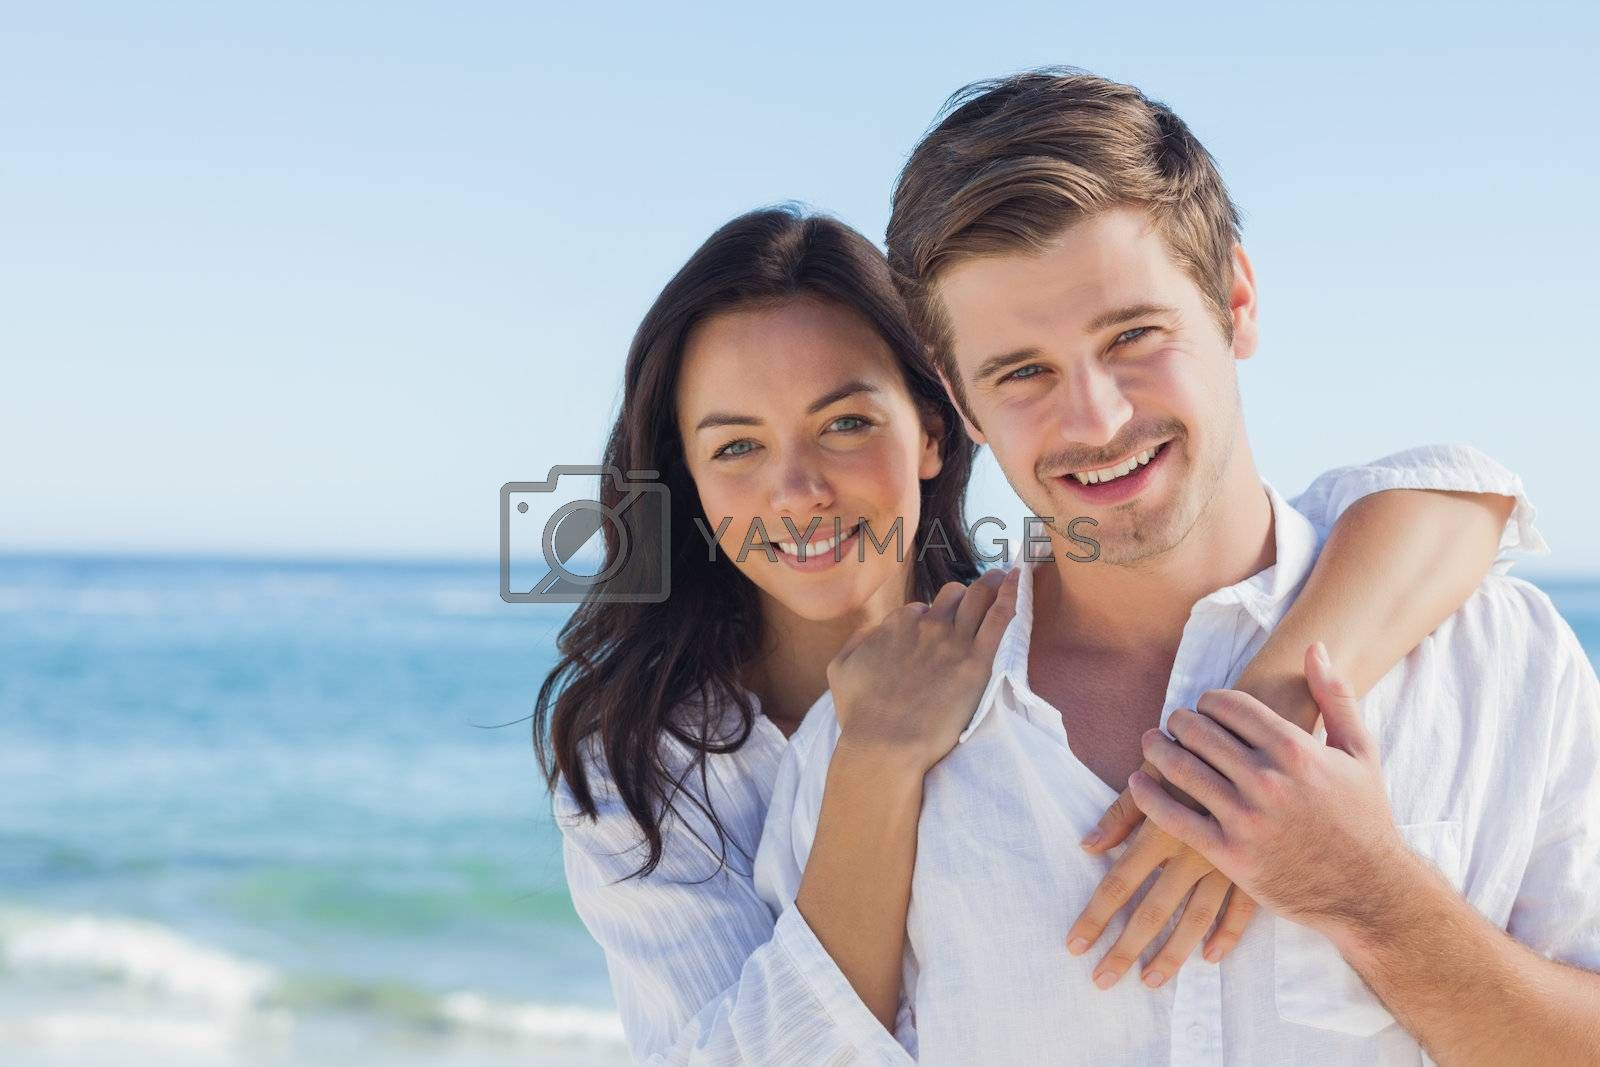 Cheerful couple embracing on the beach  by Wavebreakmedia